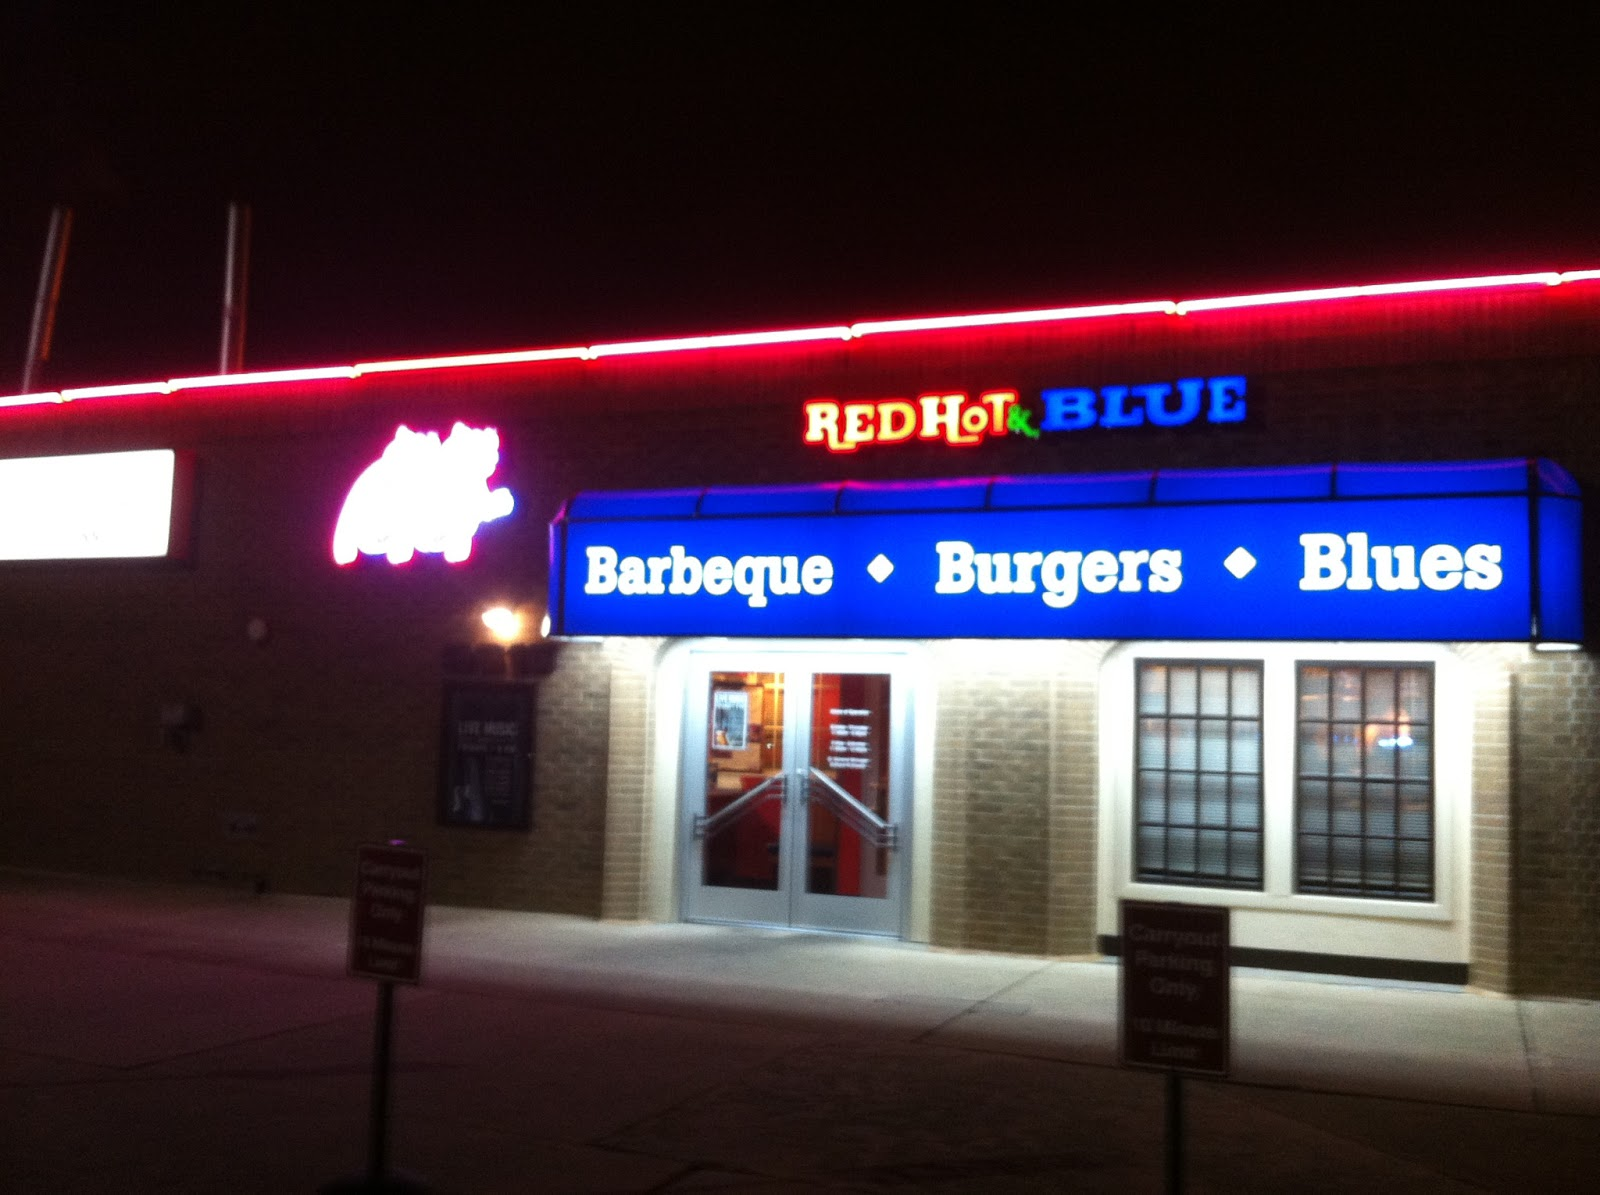 Red Hot Blue Dallas BBQ Barbecue Barbeque Bar-B-Que